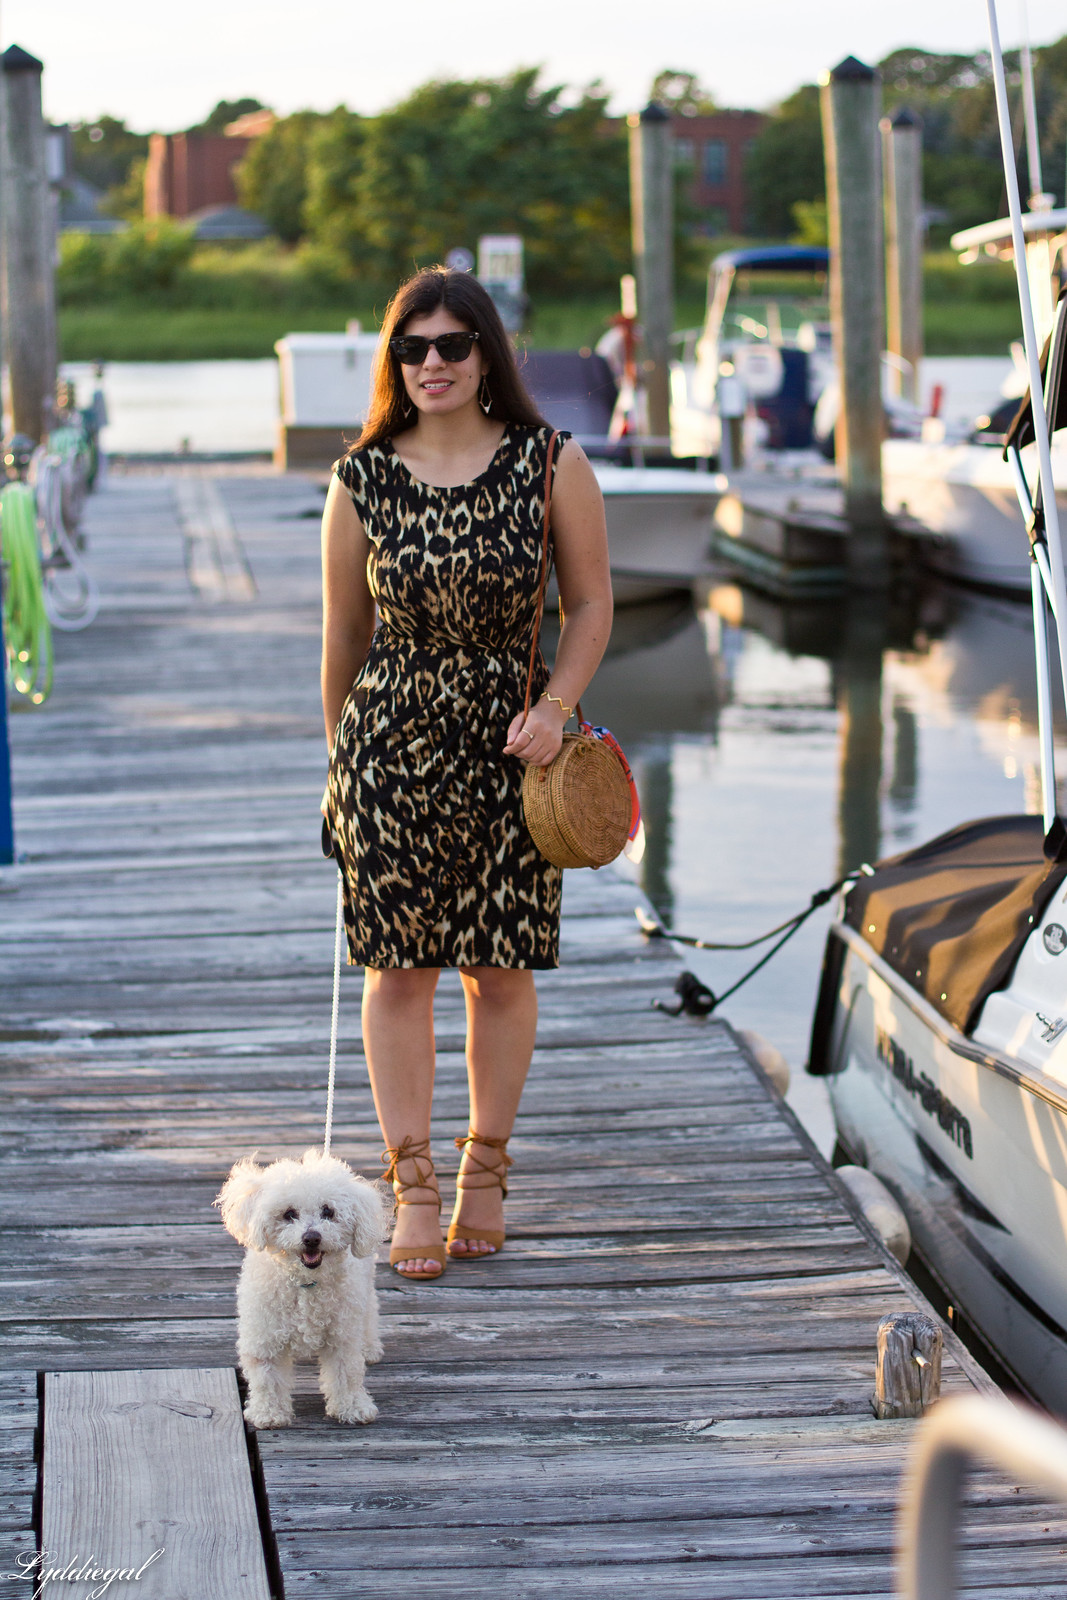 leopard sheath dress, round rattan bag, dog walking-1.jpg